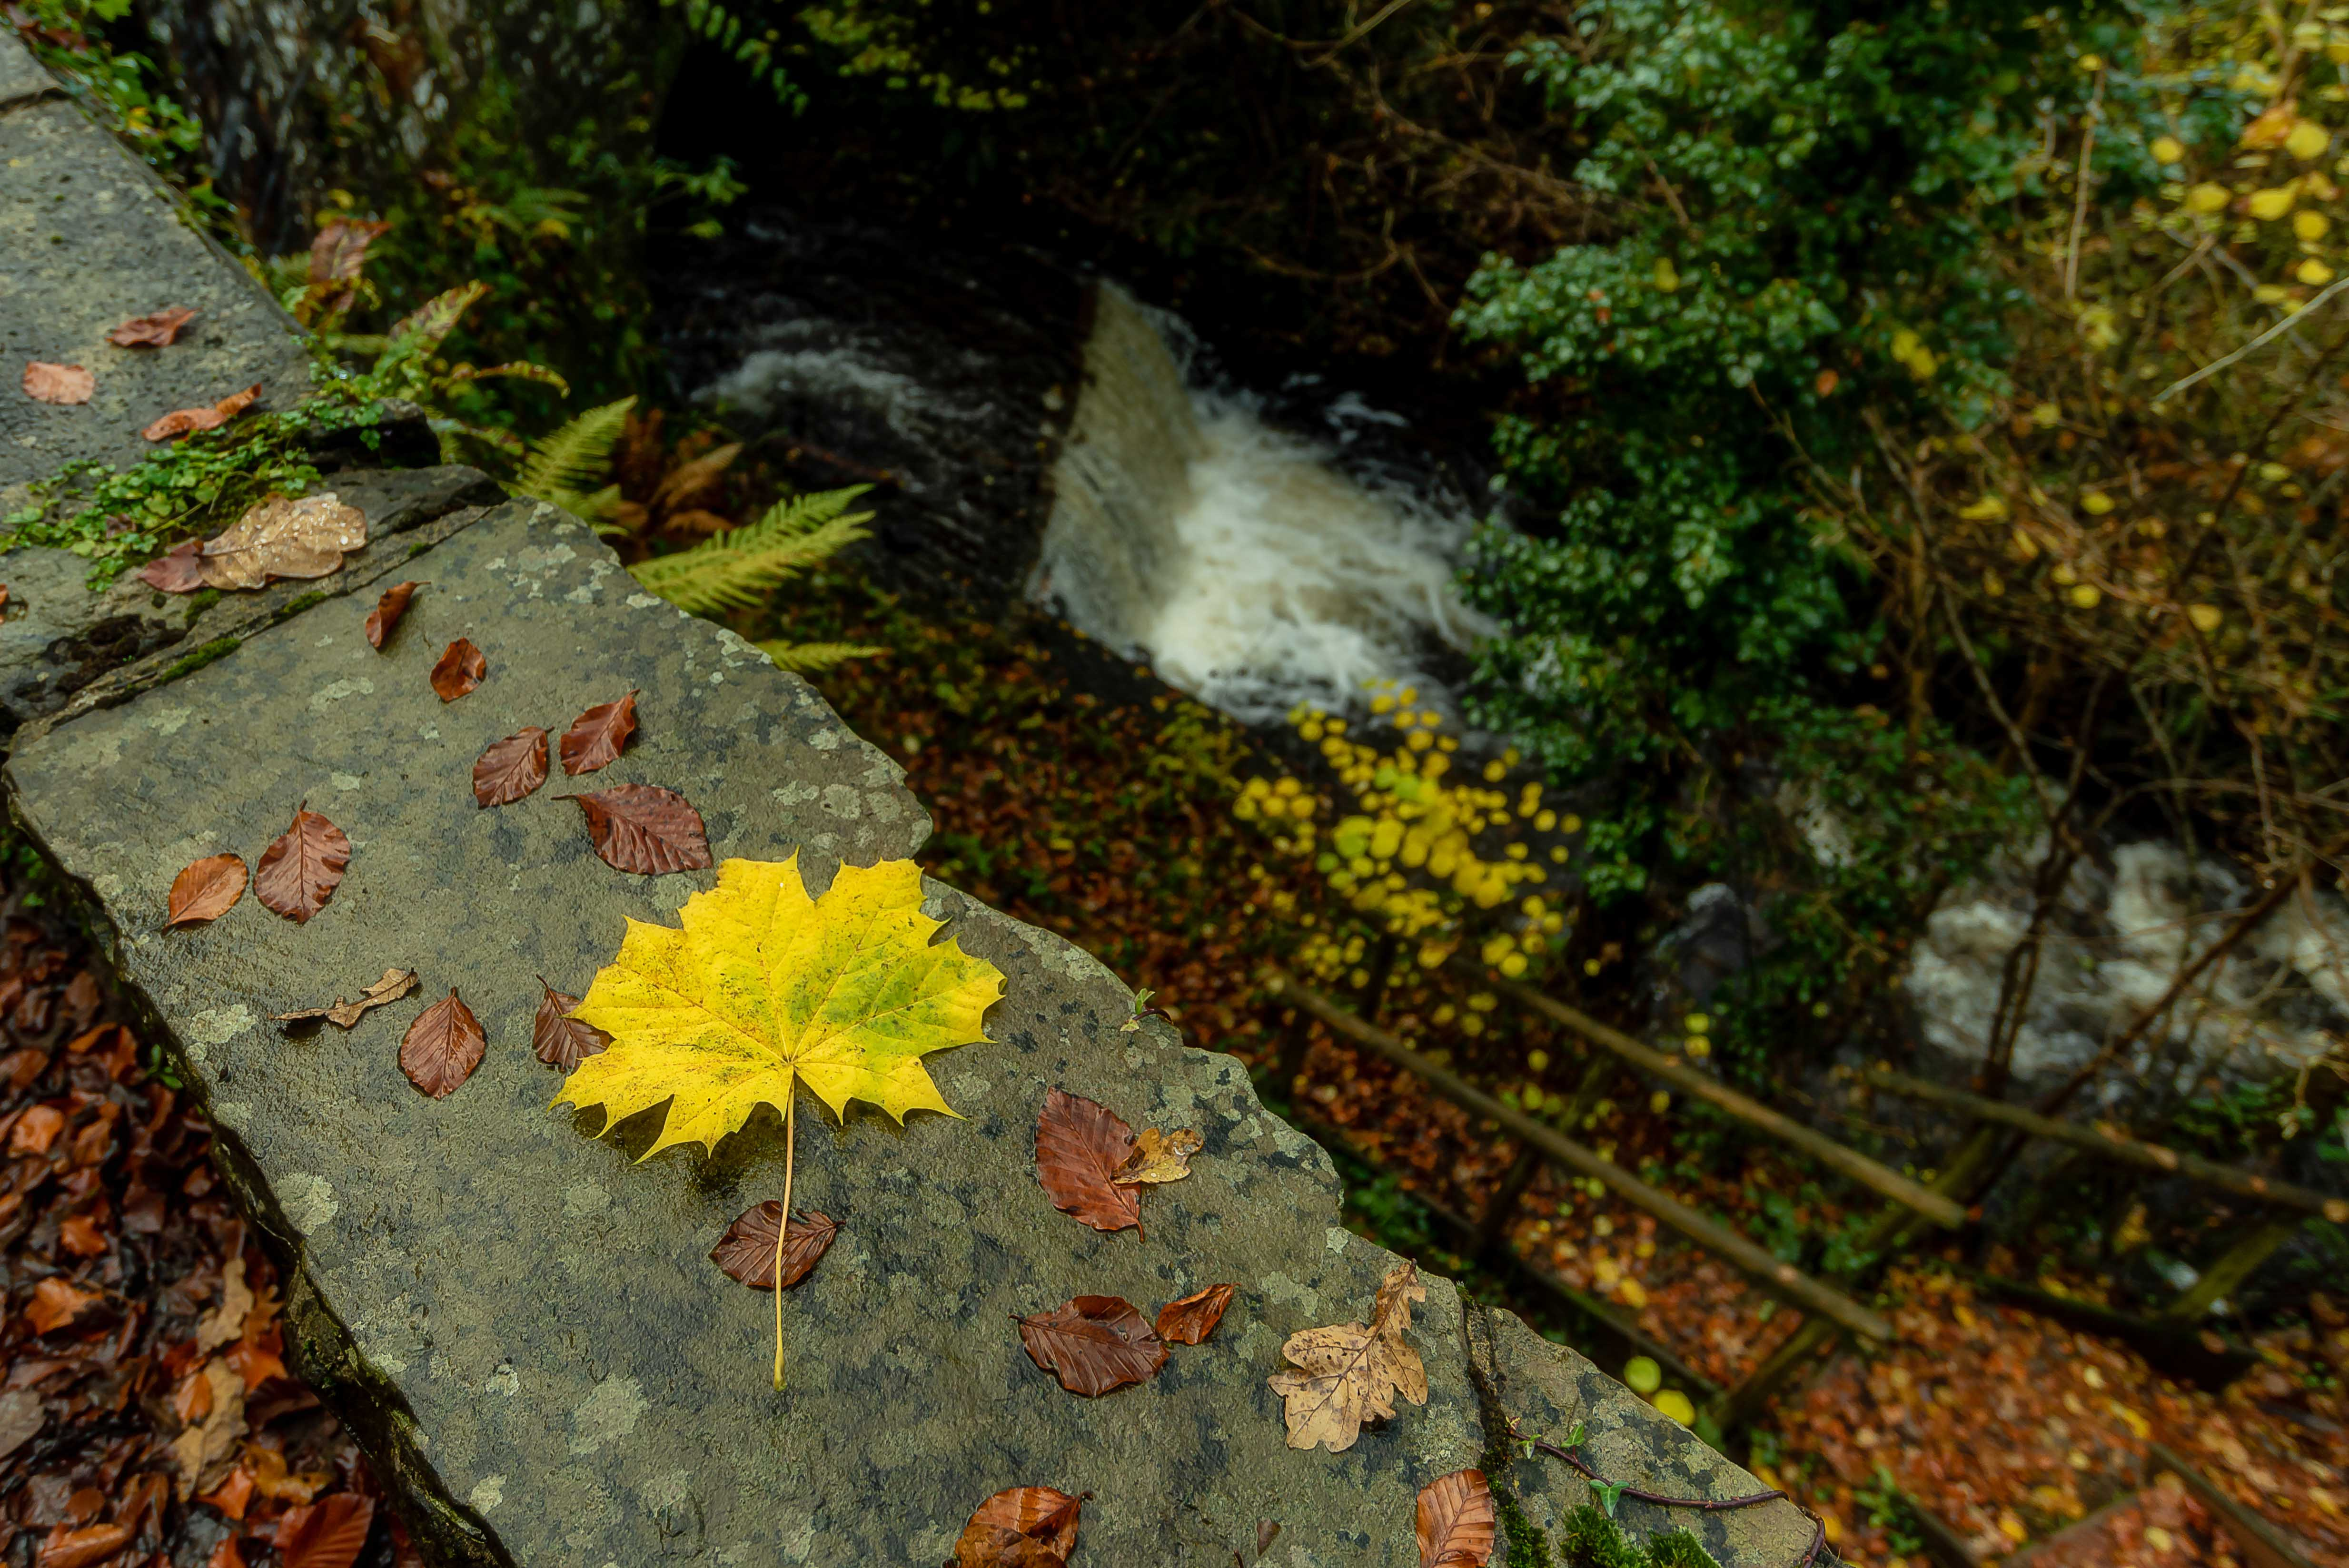 The Yellow leaf, Wales